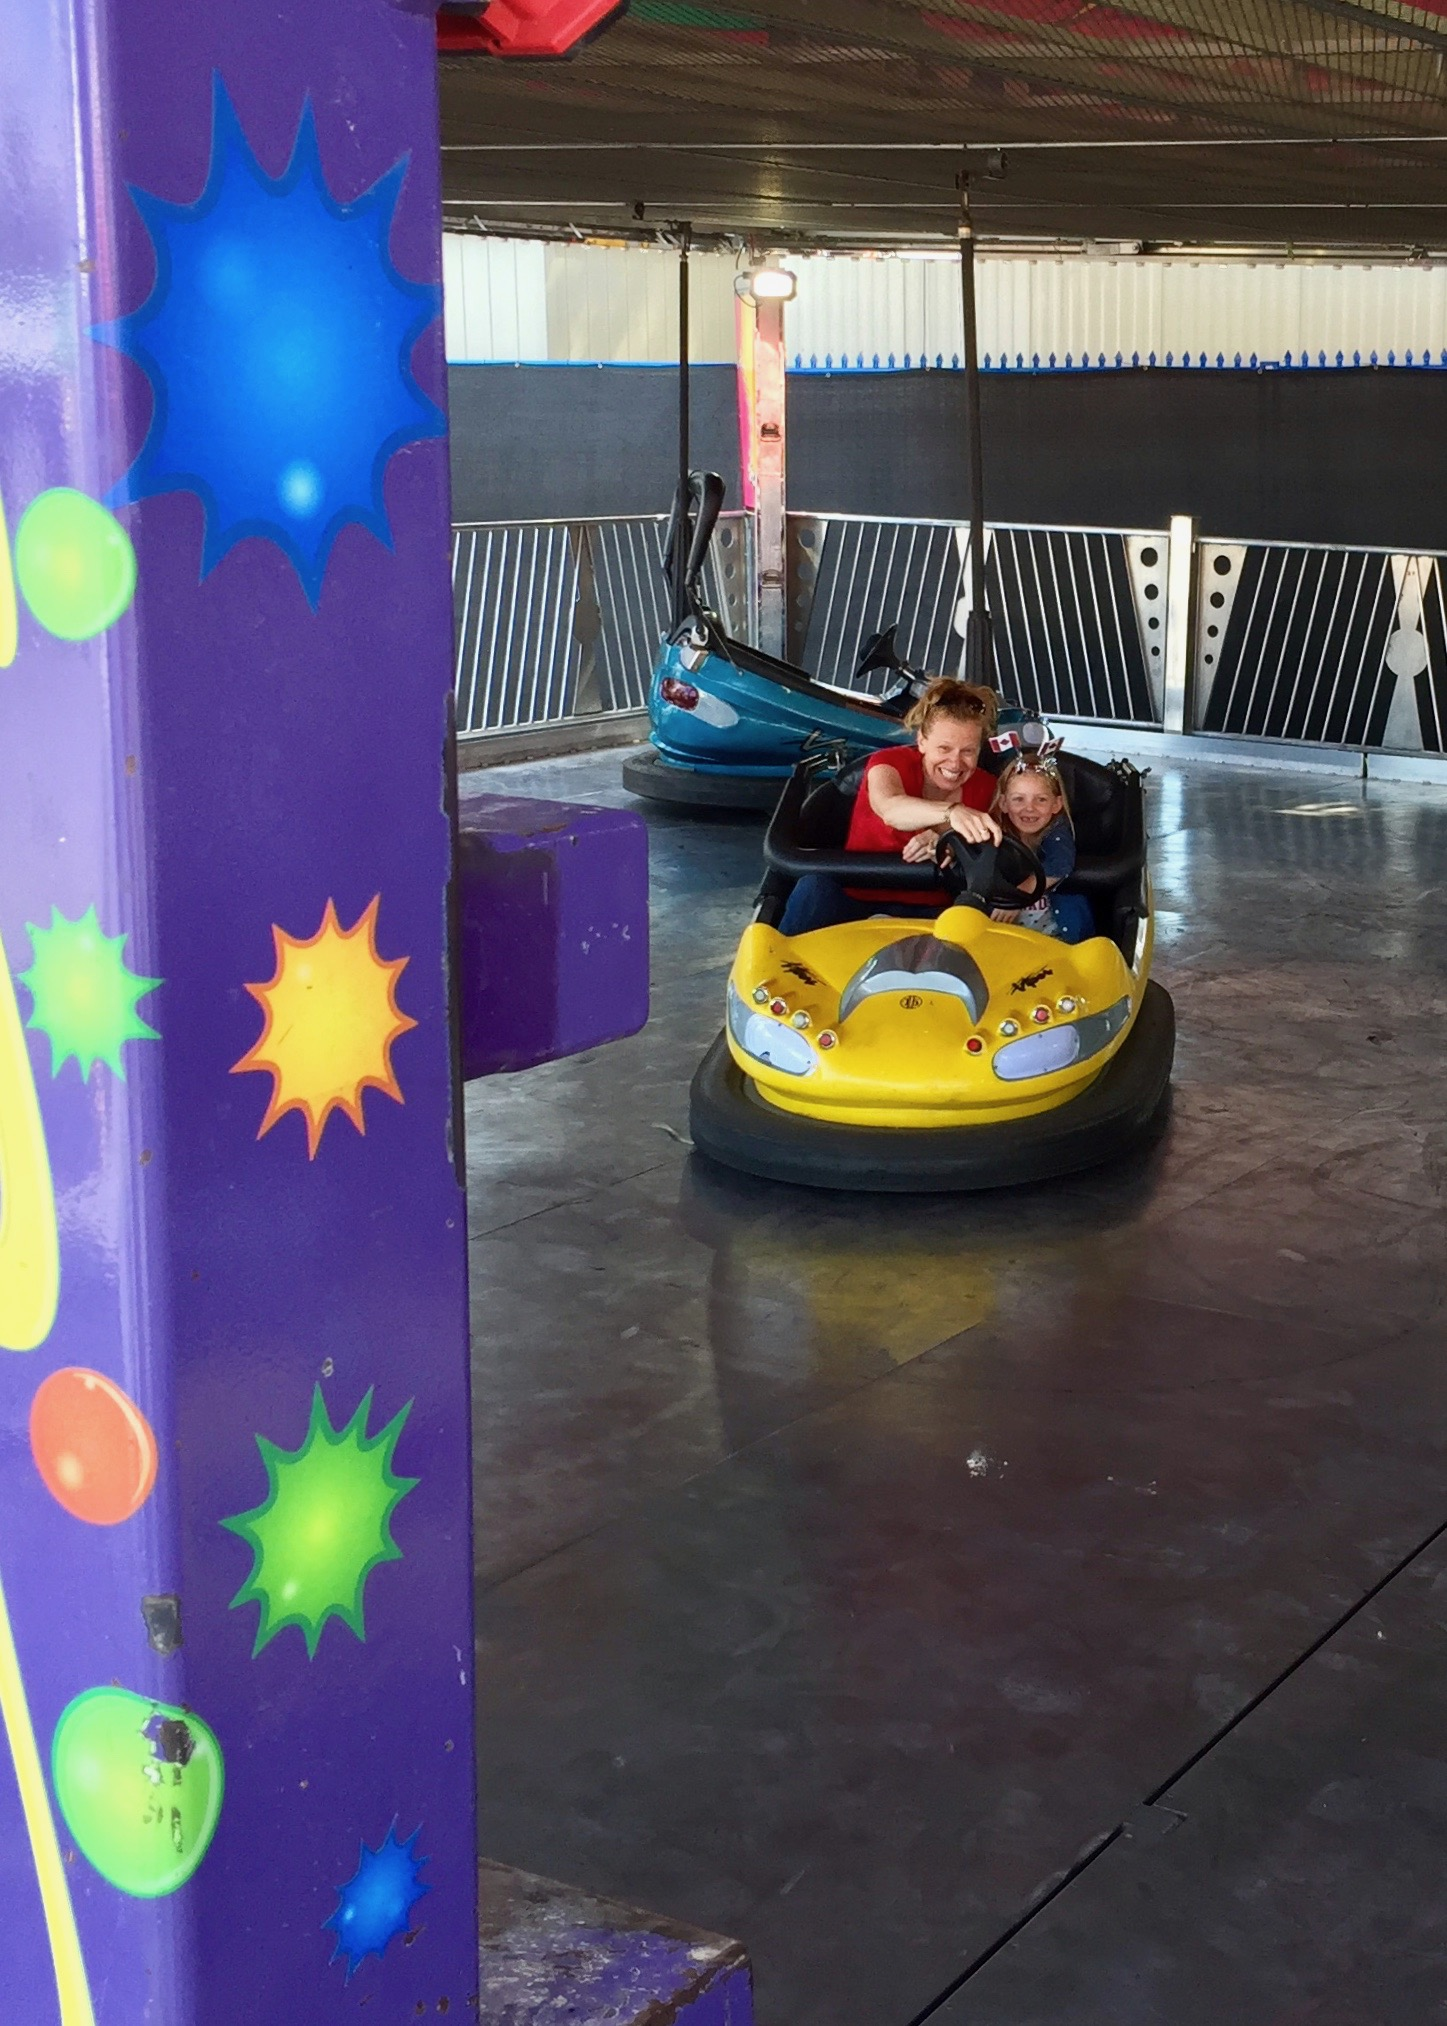 Justine and Addison ruled the bumper cars